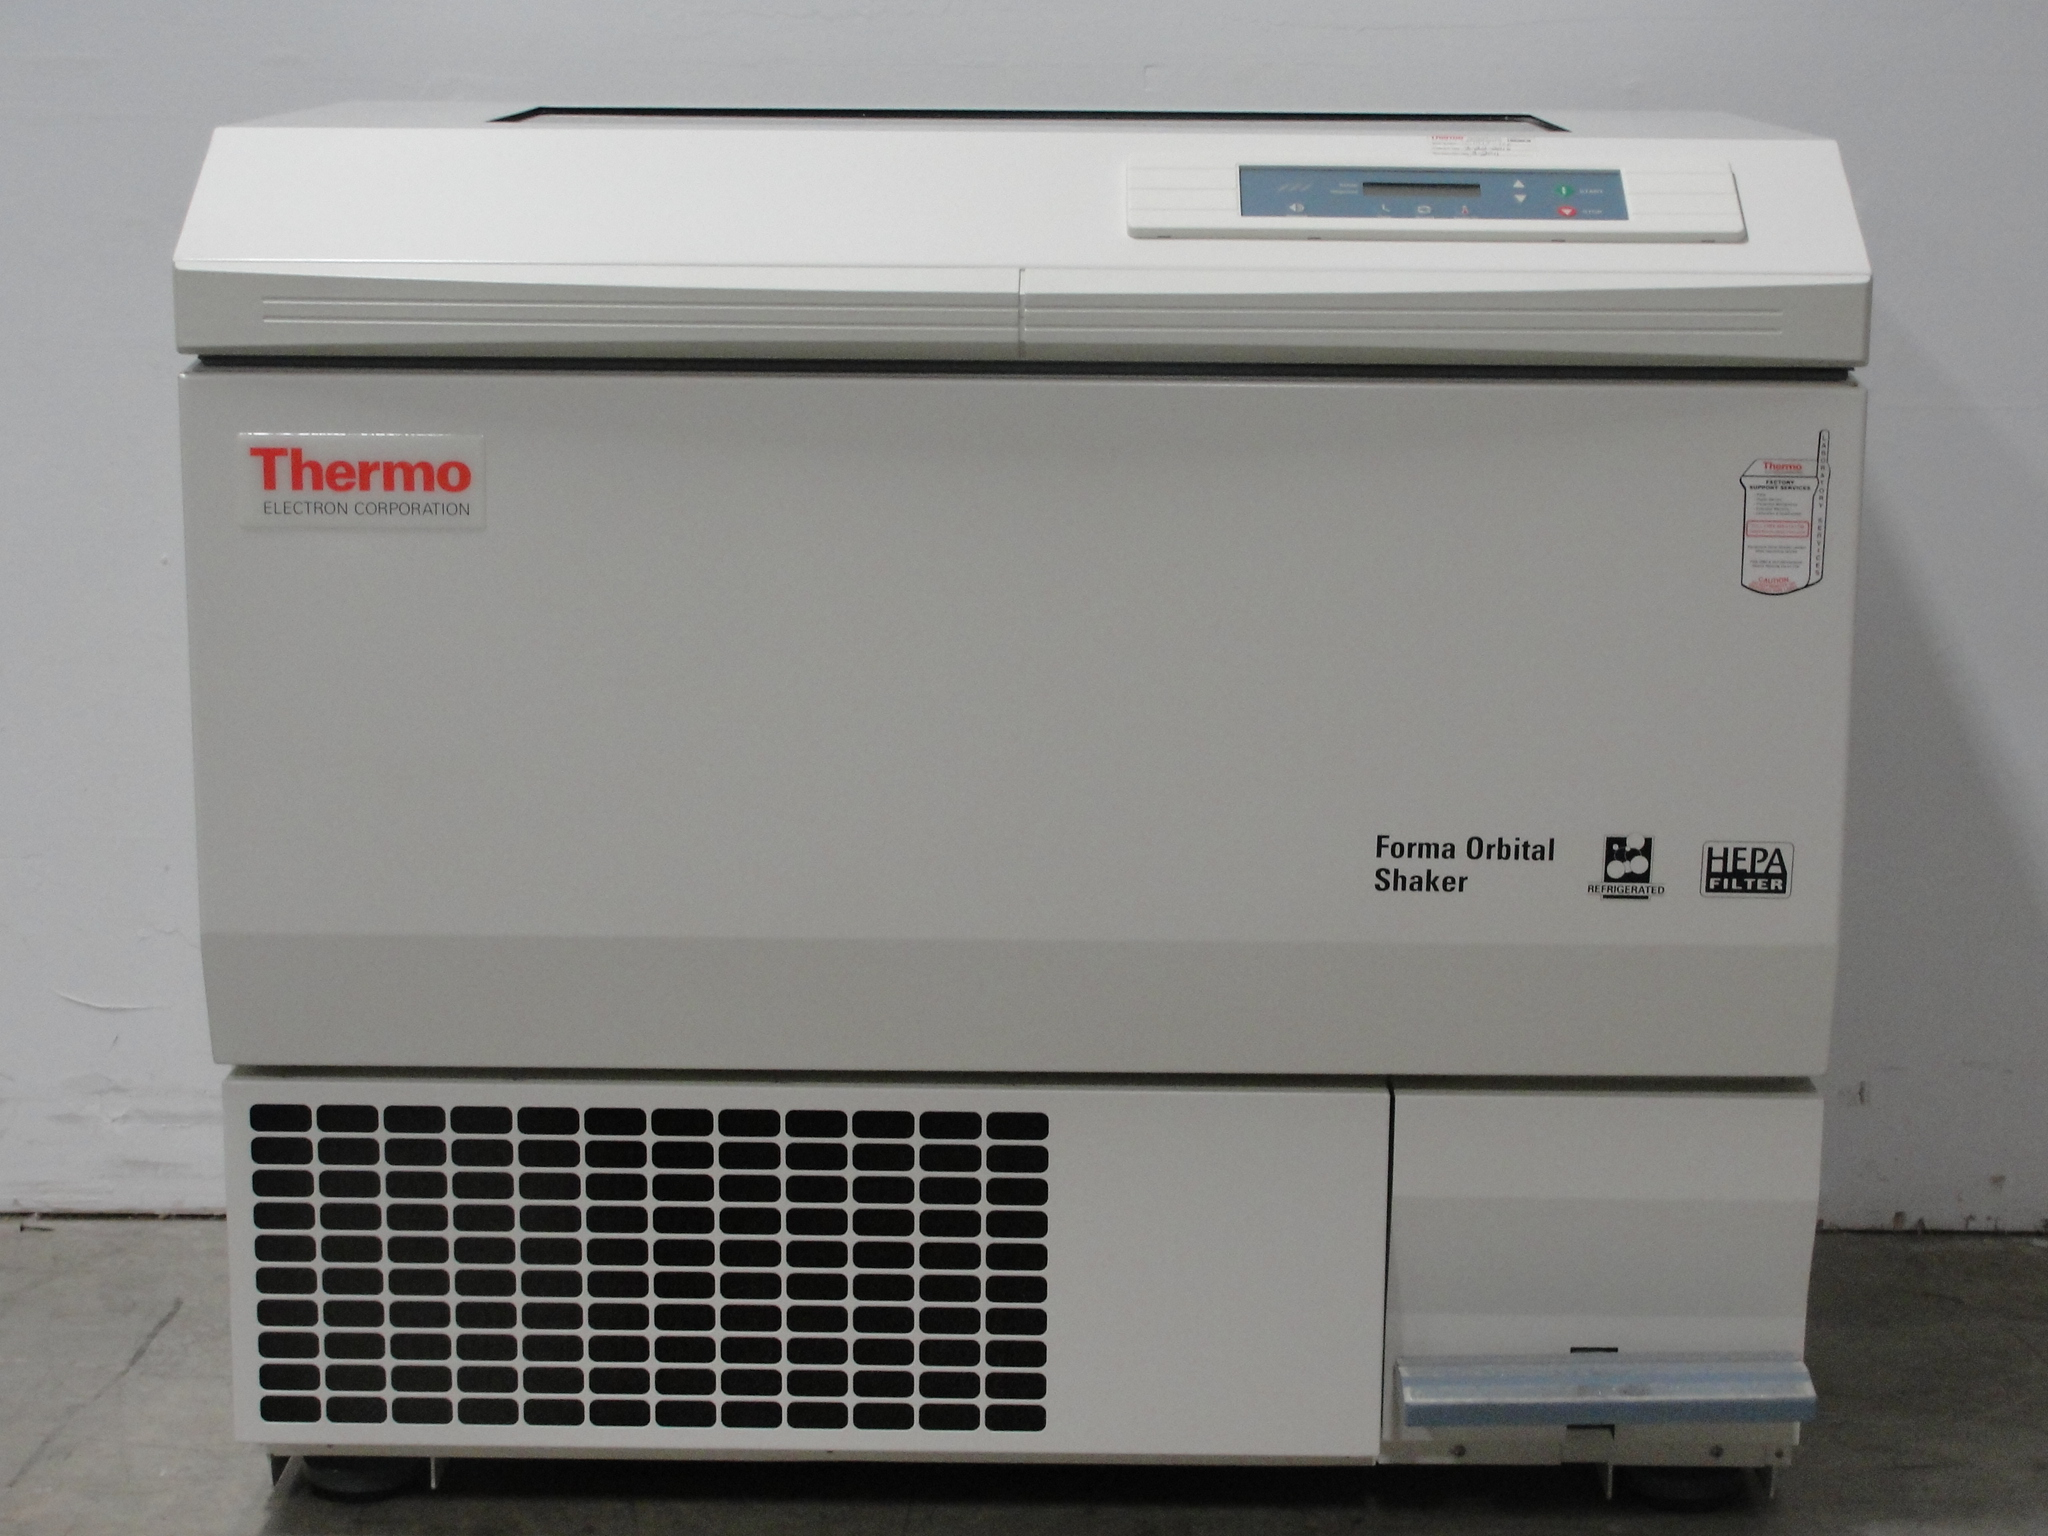 Thermo Electron Corporation 480 Forma Incubator/Refrigerated Orbital Shaker Image